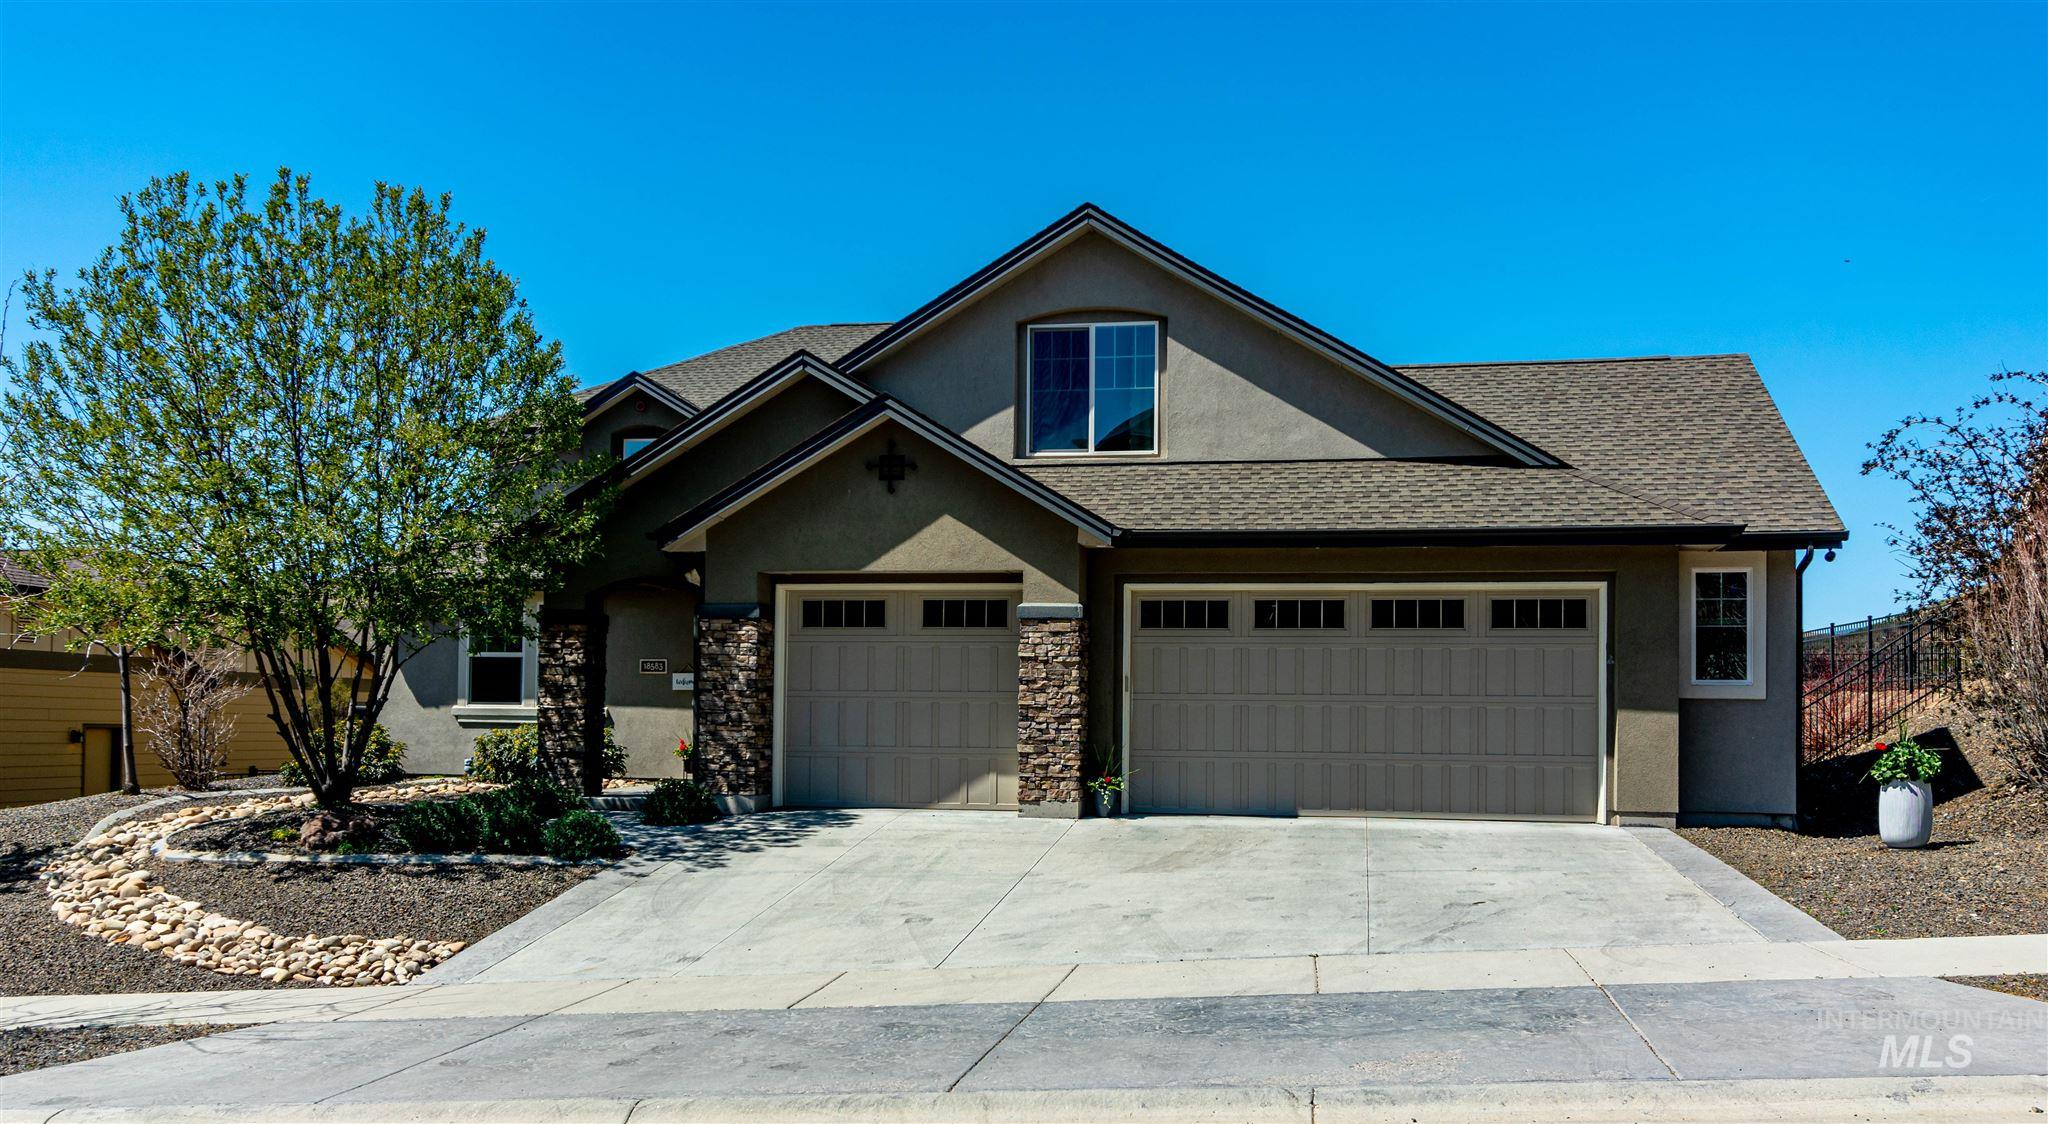 18583 N Goldenridge Pl Property Photo - Boise, ID real estate listing